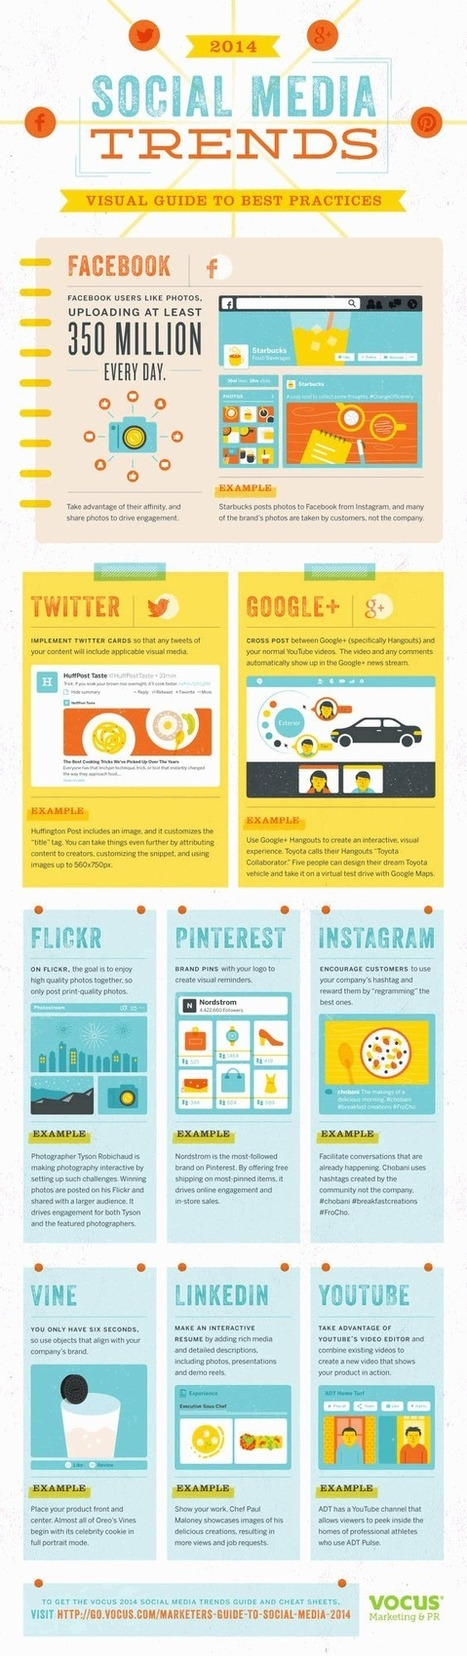 Social Media Marketing Tips 2014: A visual guide to best practices on Facebook, Twitter, Google+ and more | Digital boards | Scoop.it